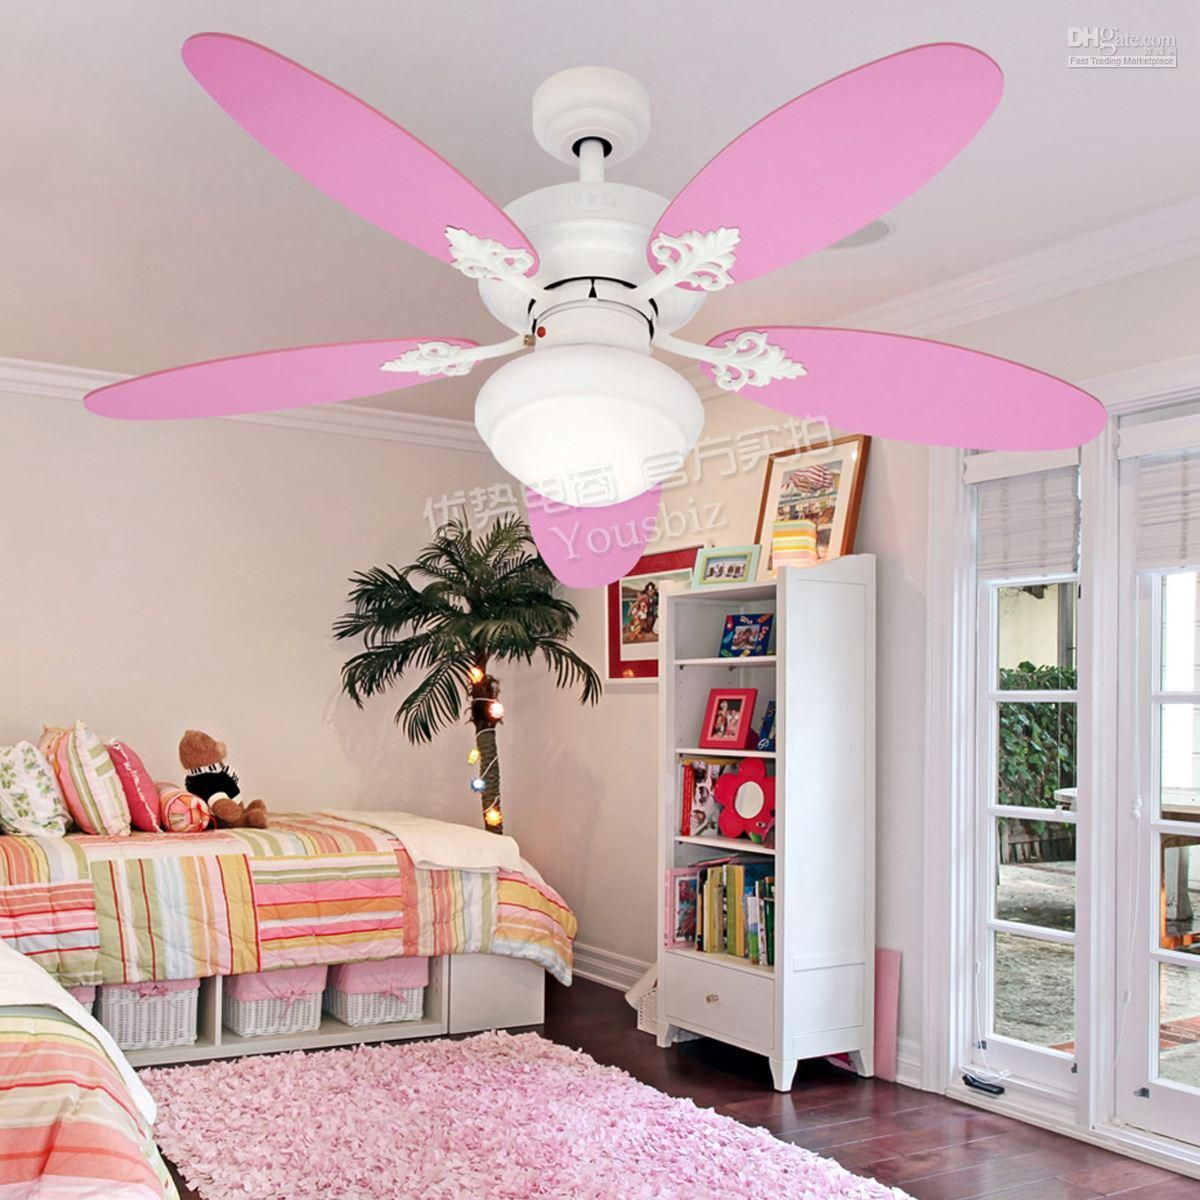 Ceiling Light For Baby Boy Room Pink Ceiling Fans With Lights For Teenage Girl Bedroom